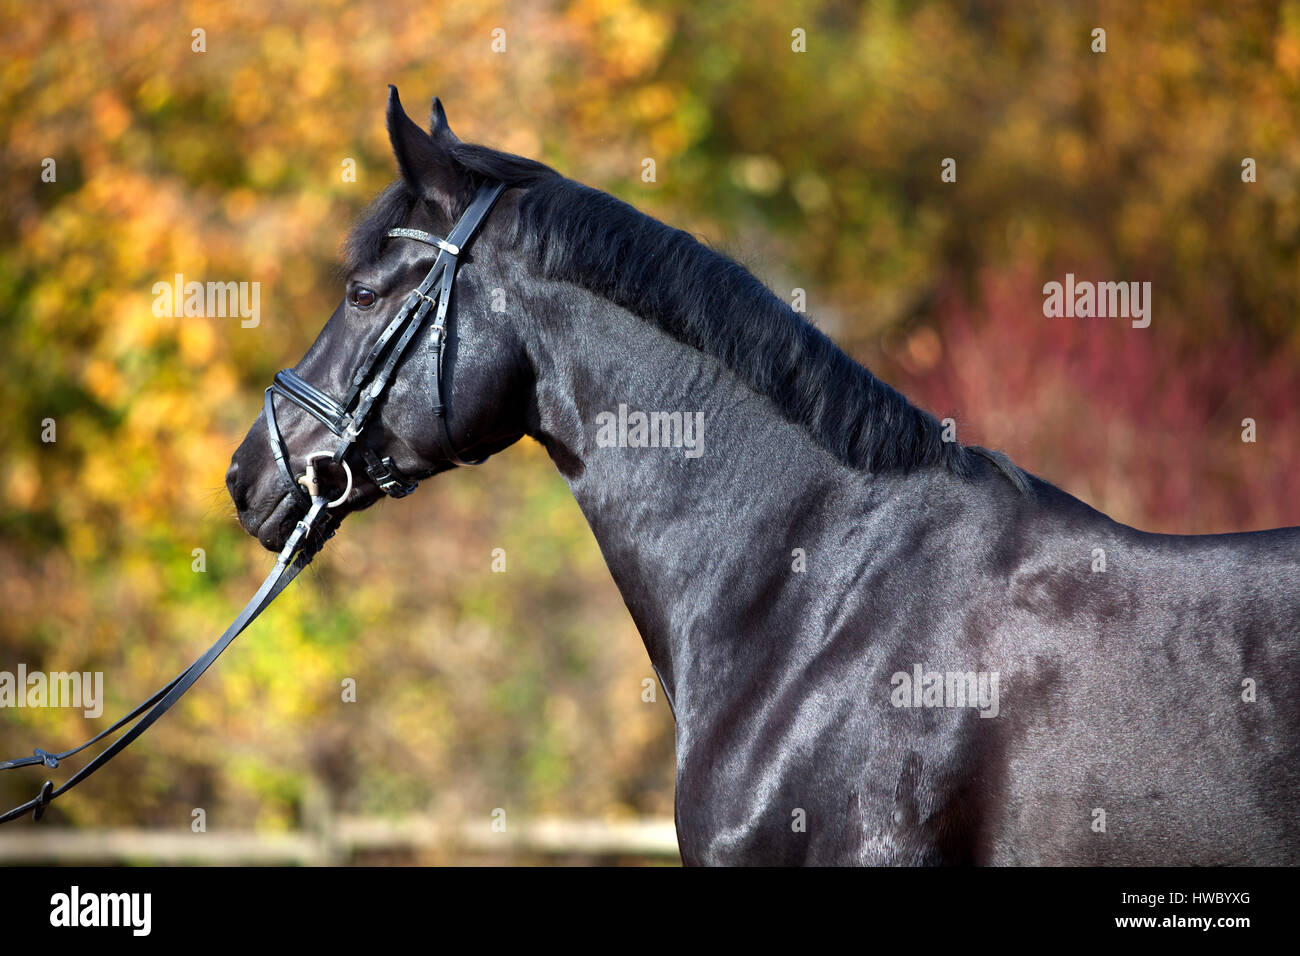 black horse portrait outside with colorful autumn leaves in background - Stock Image